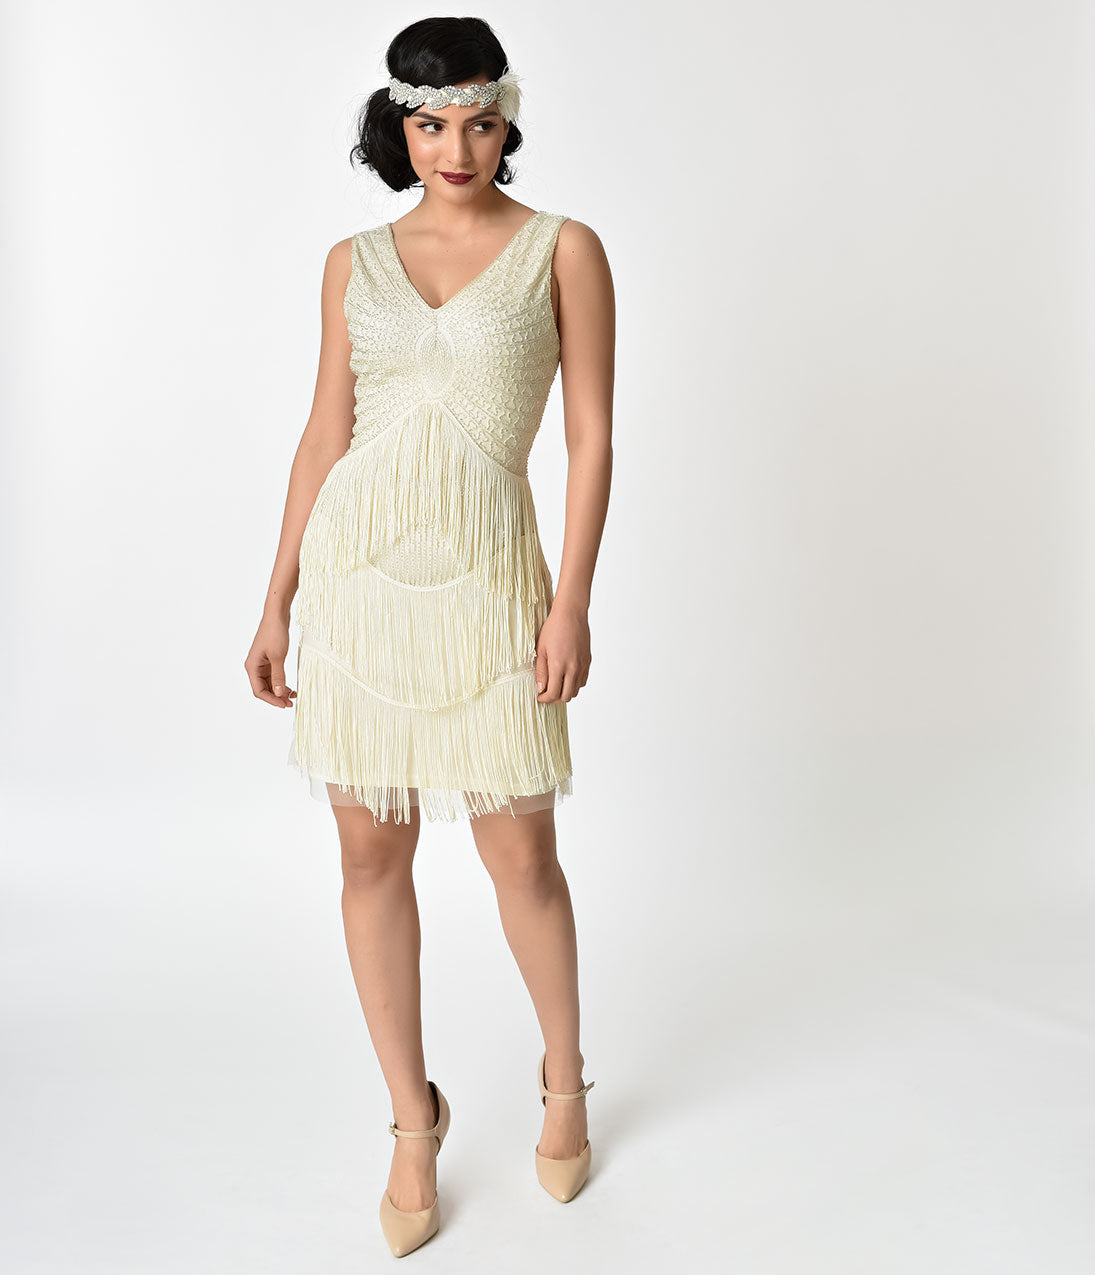 Bedwelming Great Gatsby Dress - Great Gatsby Dresses for Sale &ZQ81